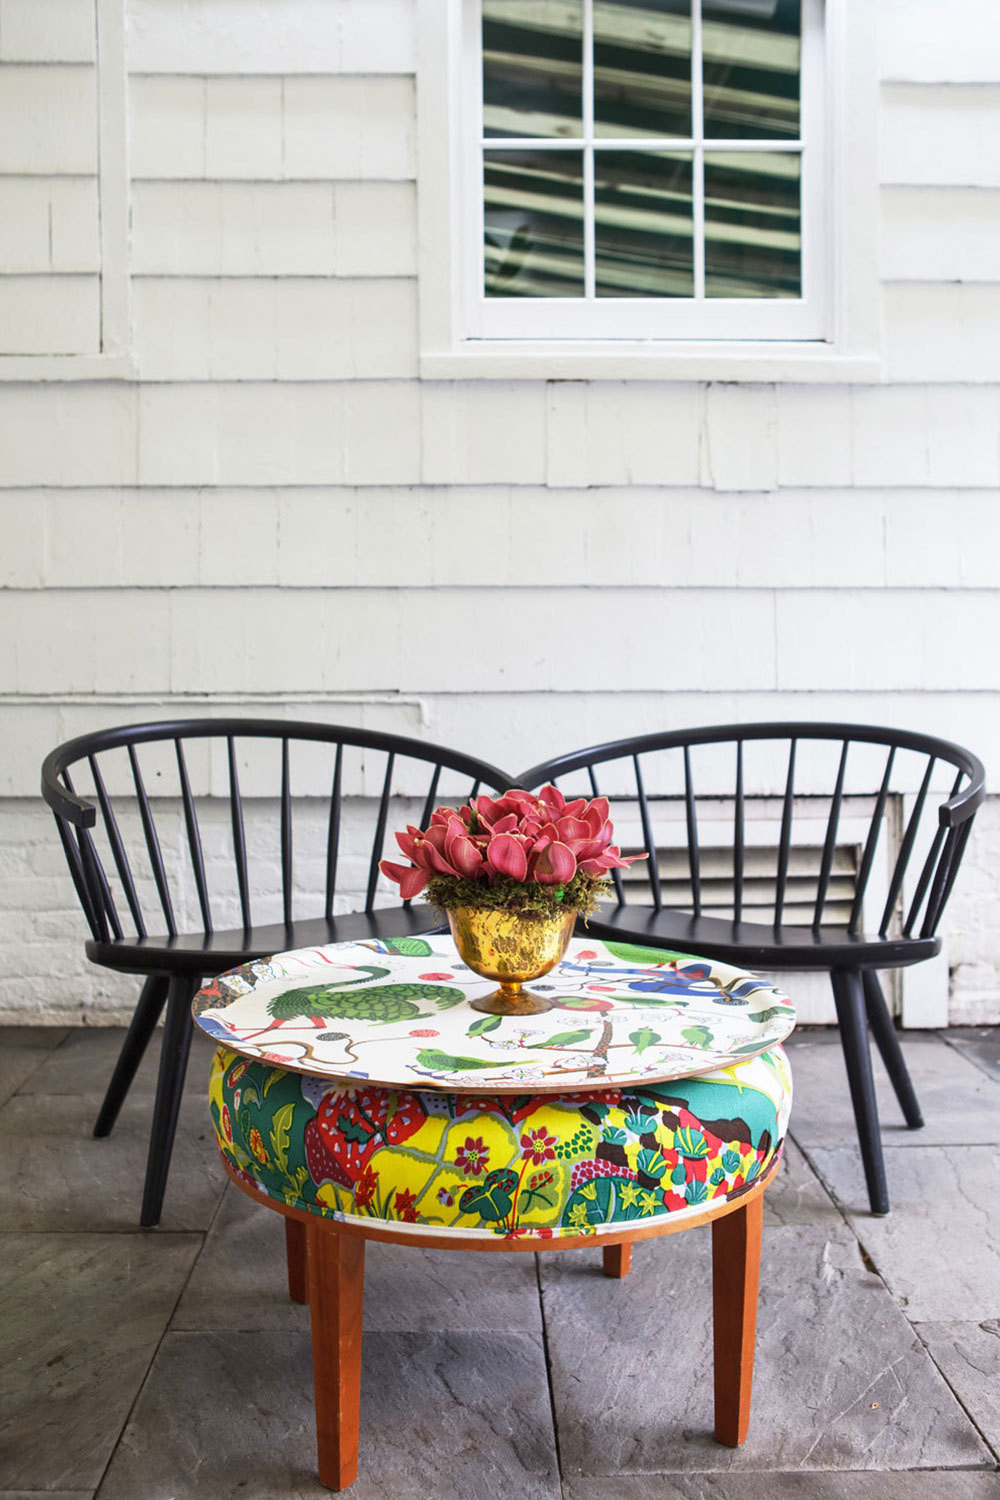 A bold table and tray brighten up an outdoor area.